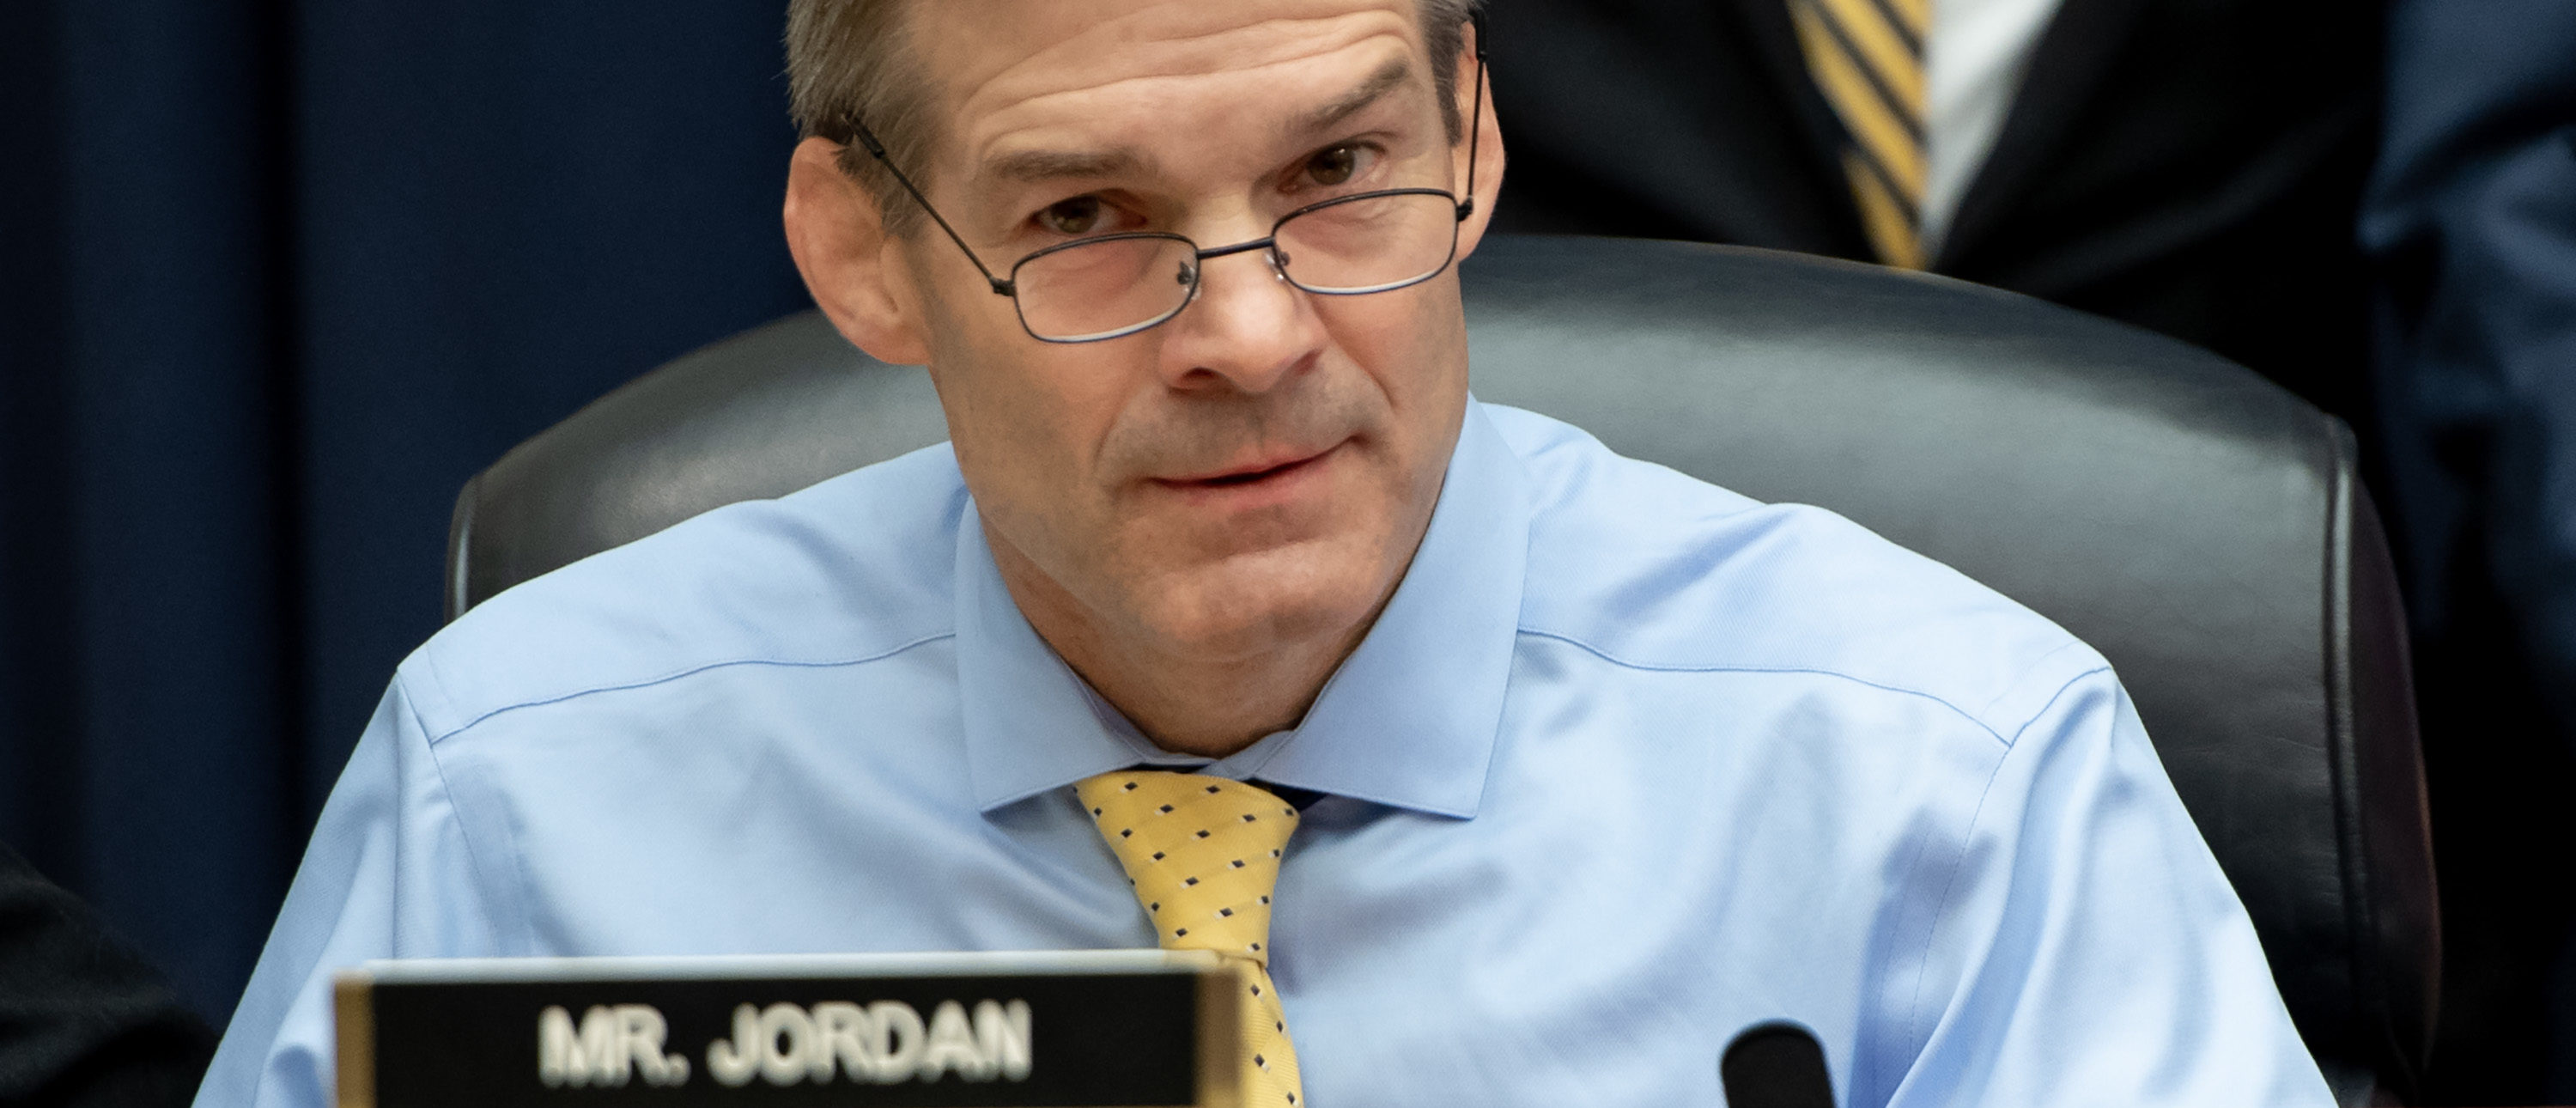 Jim Jordan Sends Letters To Amazon, Capital One After Hacker Accessed Personal Data Of Over 100 Million People